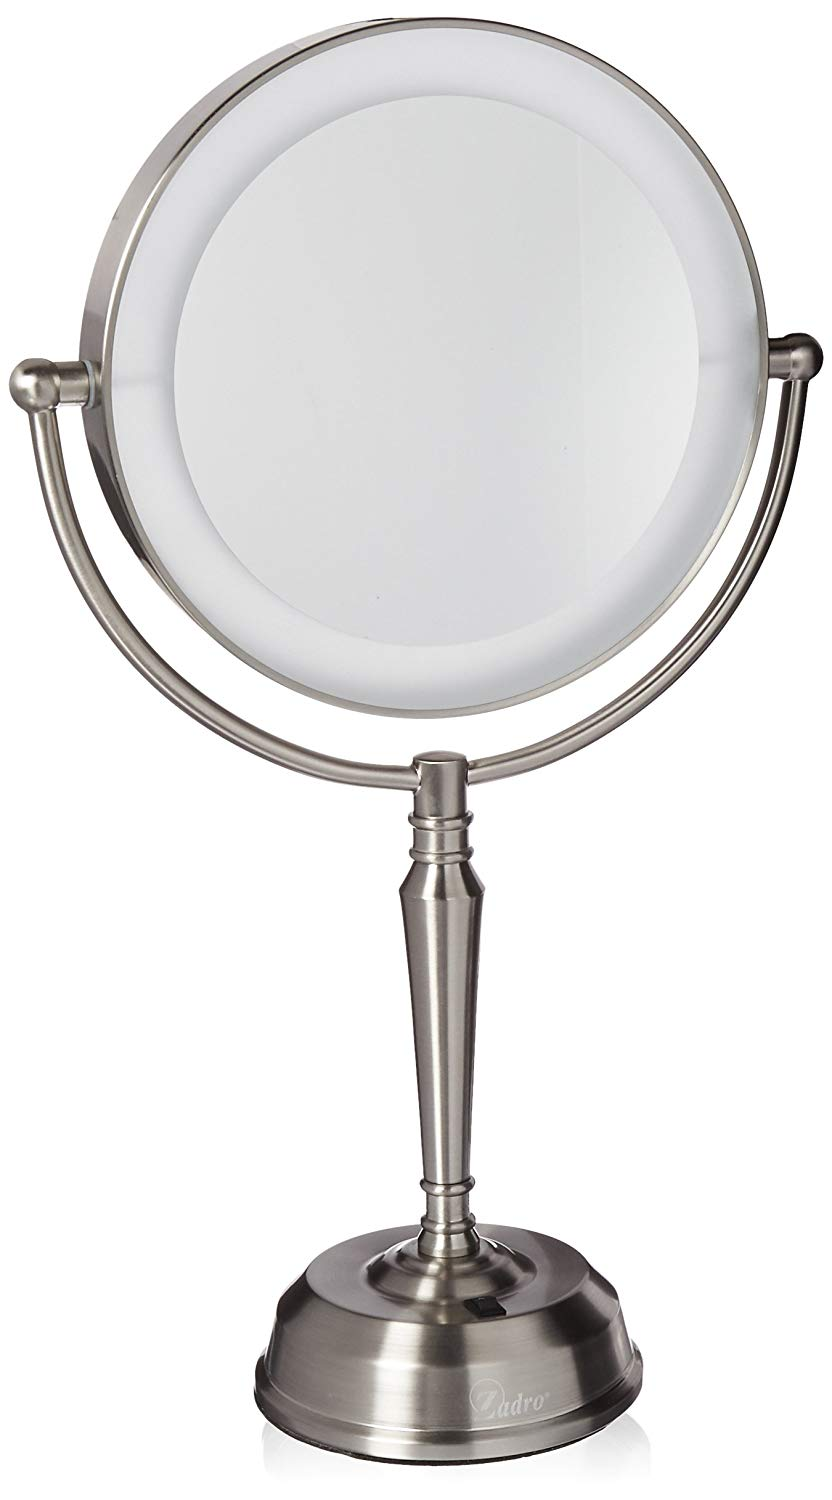 Zadro Lighted Makeup Mirror.Details About Zadro 10x 1x Led Lighted Vanity Makeup Mirror W Rechargeable Battery Usb Port